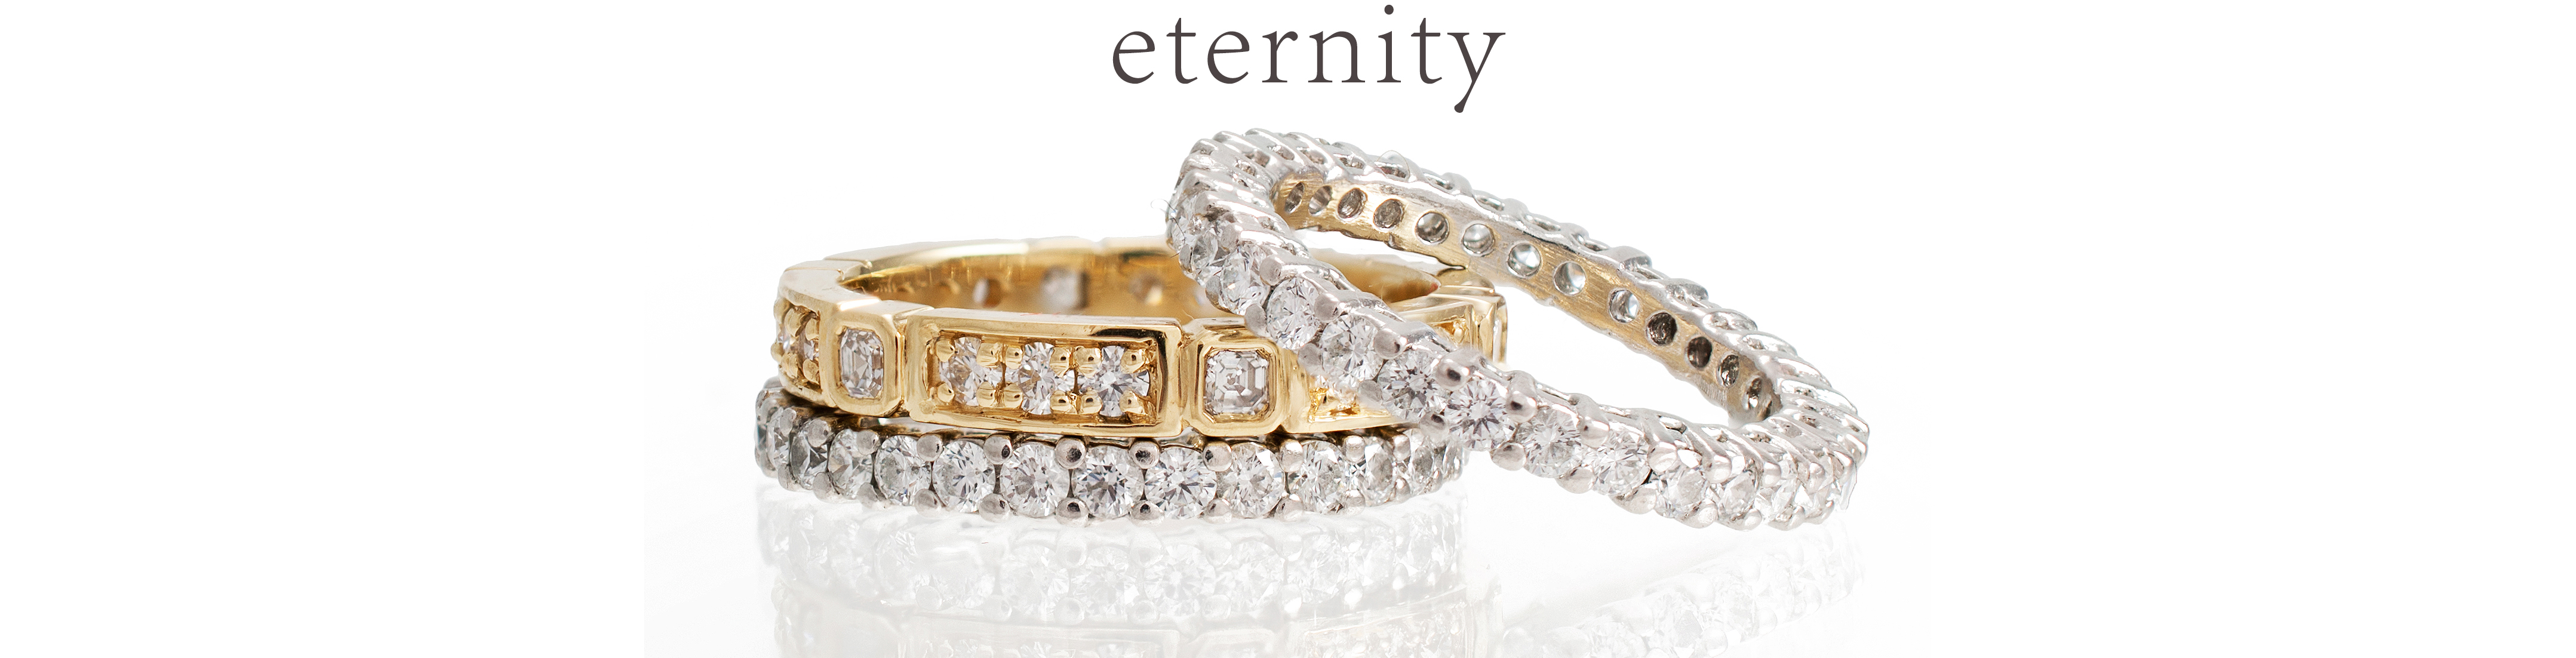 band eternity ring z rings j jewelry id flip ruby org platinum bands sapphire diamond